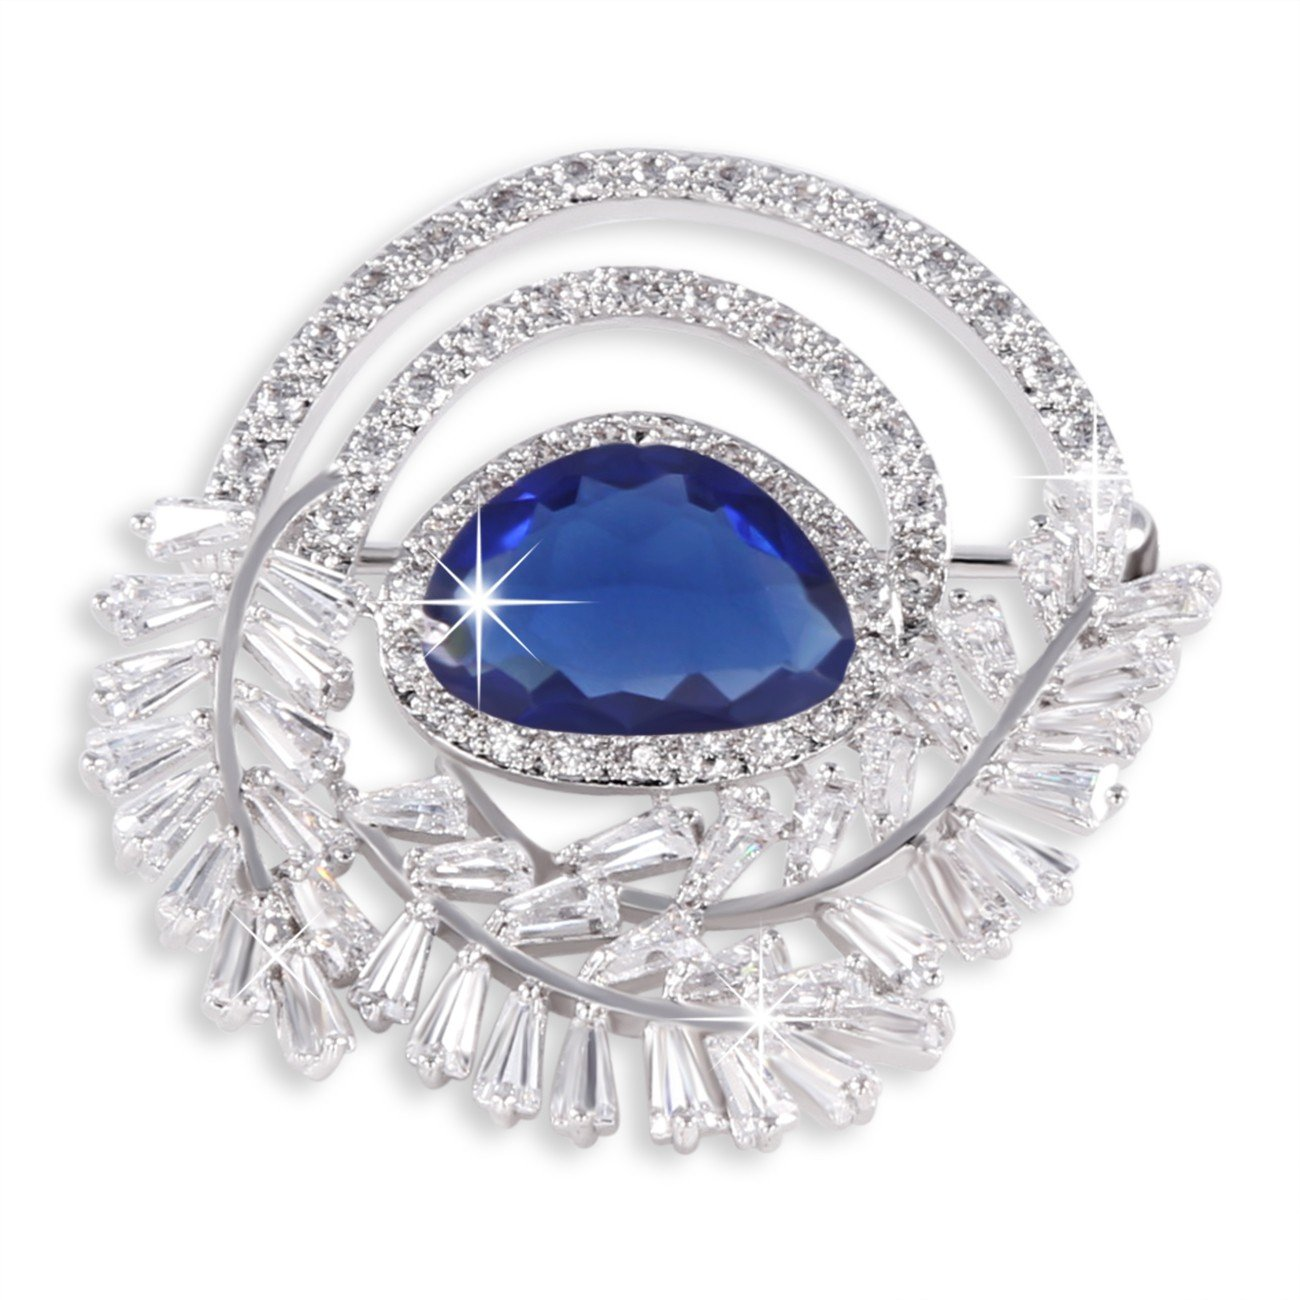 GULICX Cubic Zirconia Crystal Luxury Sapphire Color Tear Drop Blue Brooch Silver Tone Women and Girl